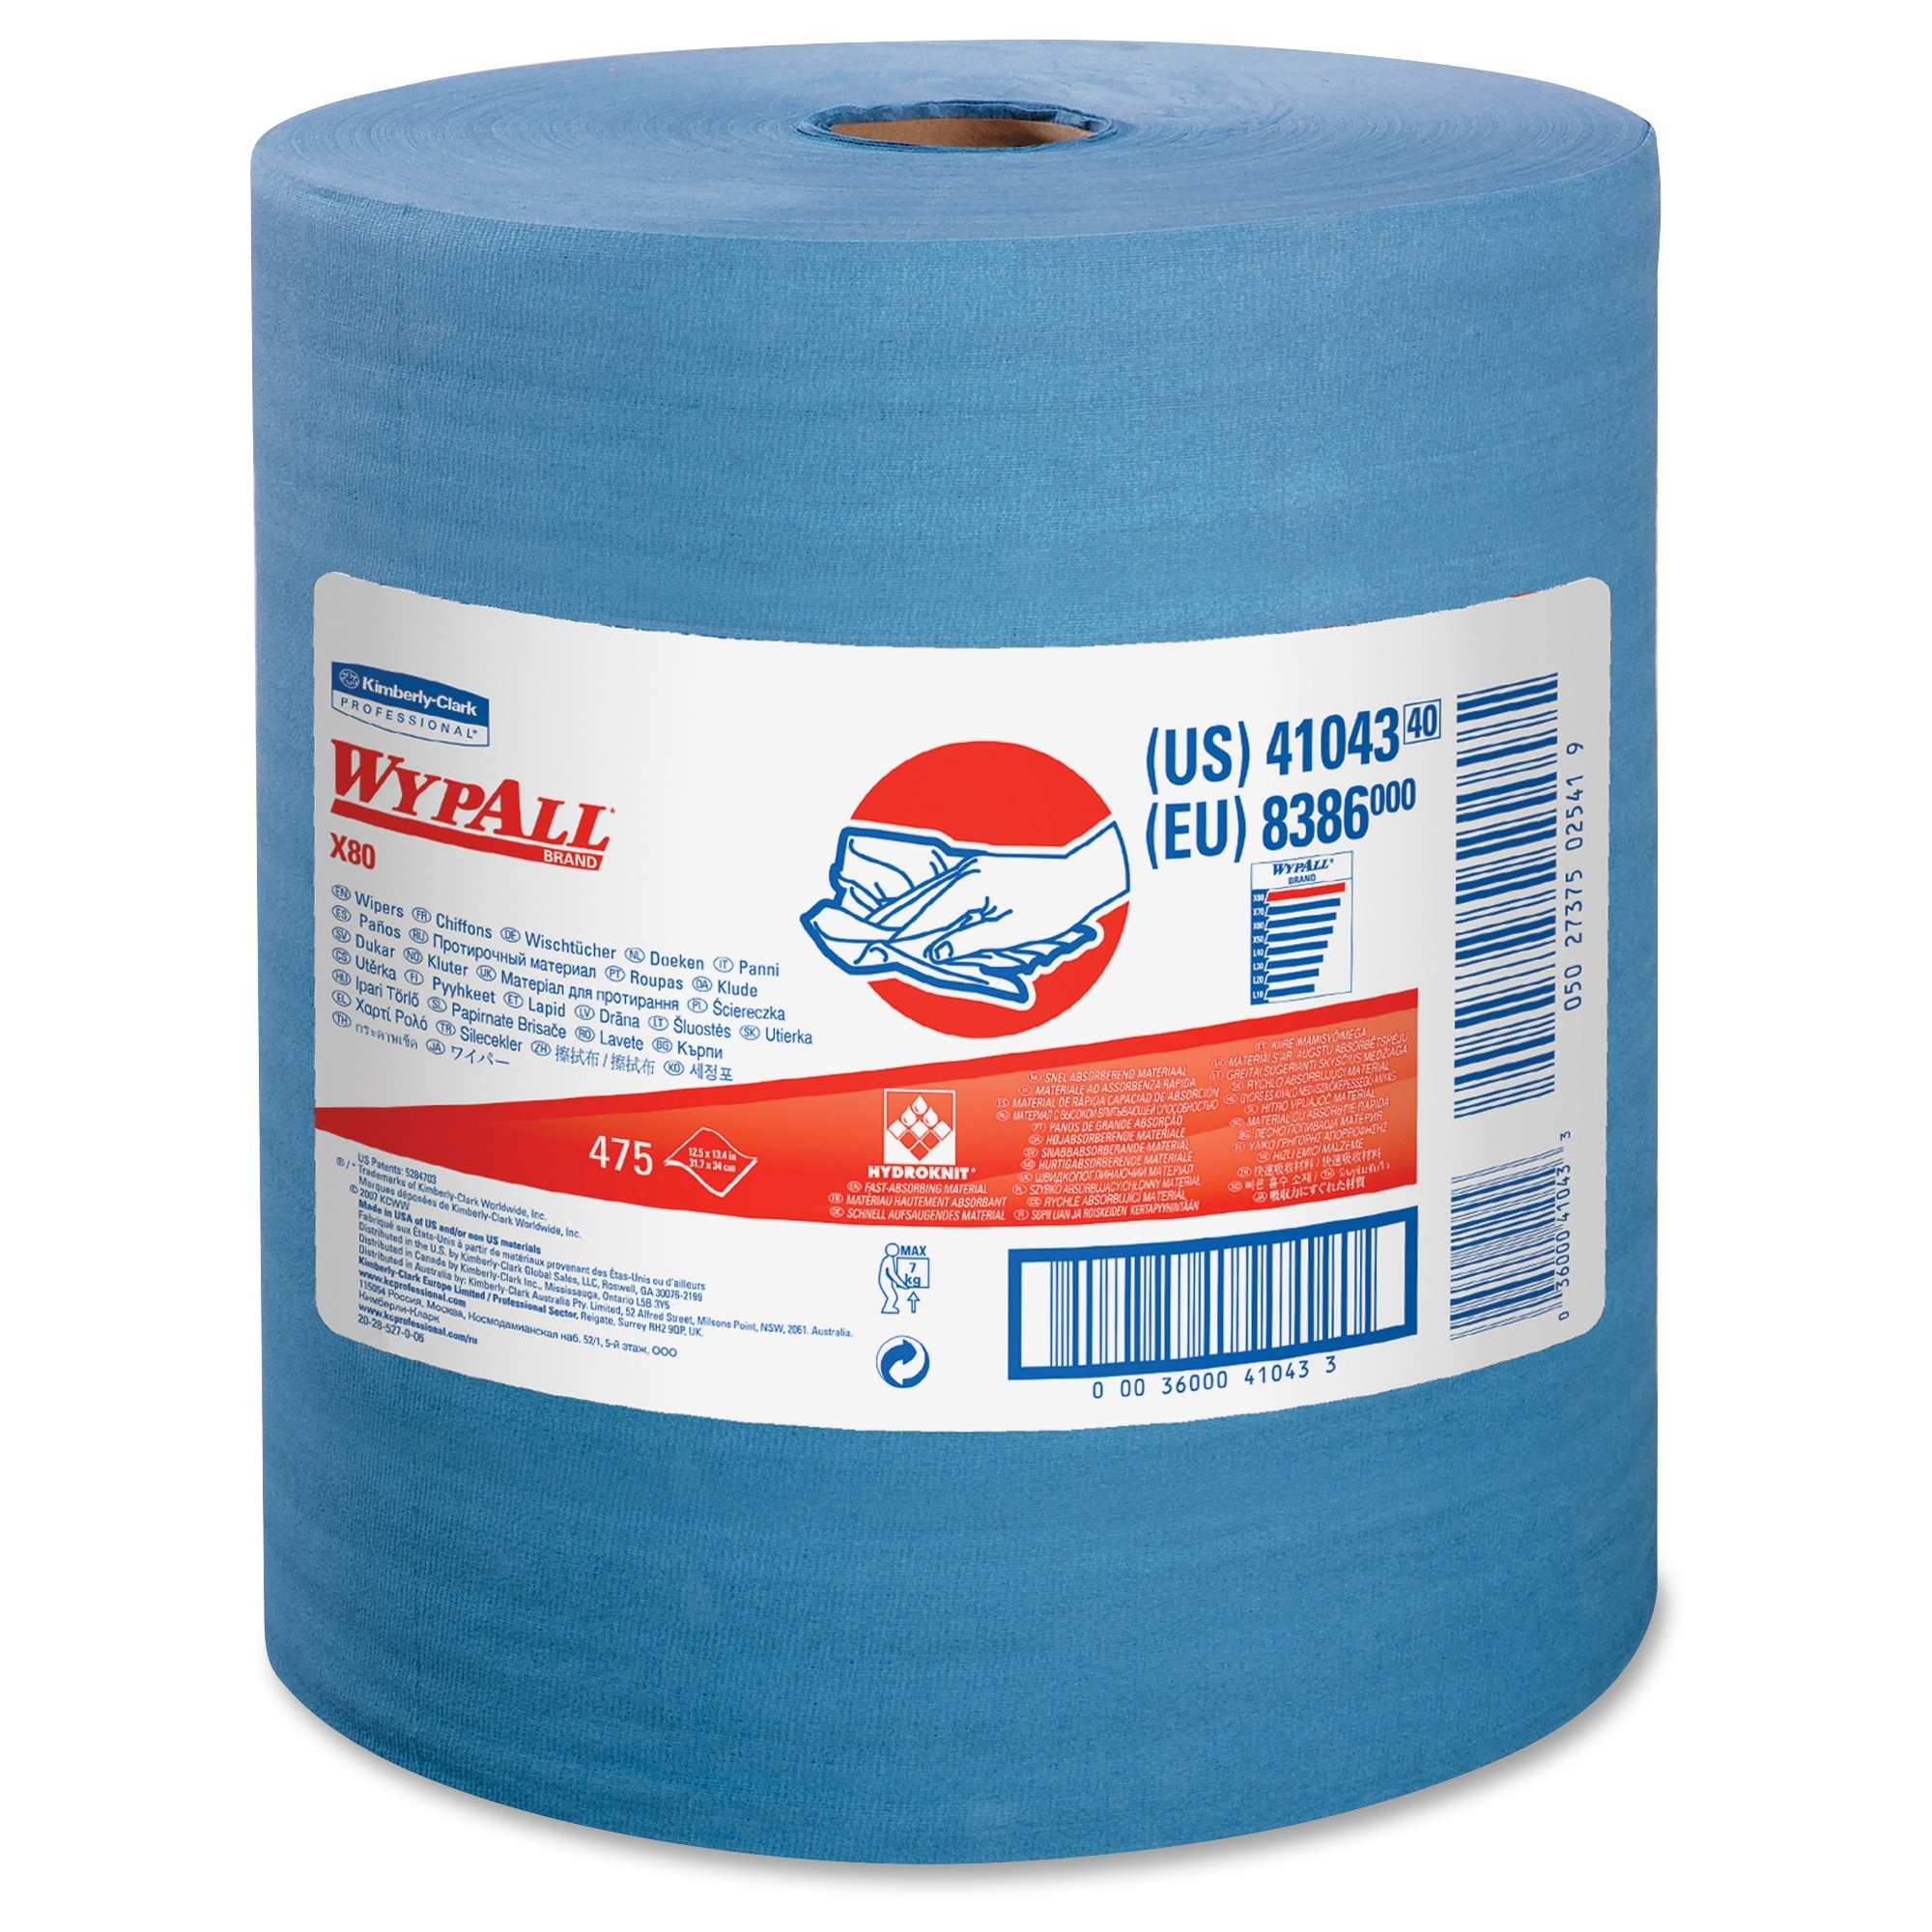 "Wypall X80 Wipers - 475 Sheets/roll - 1 / Each - 12.50"" X 13.40"" - Blue - Cloth (kim-41043)"